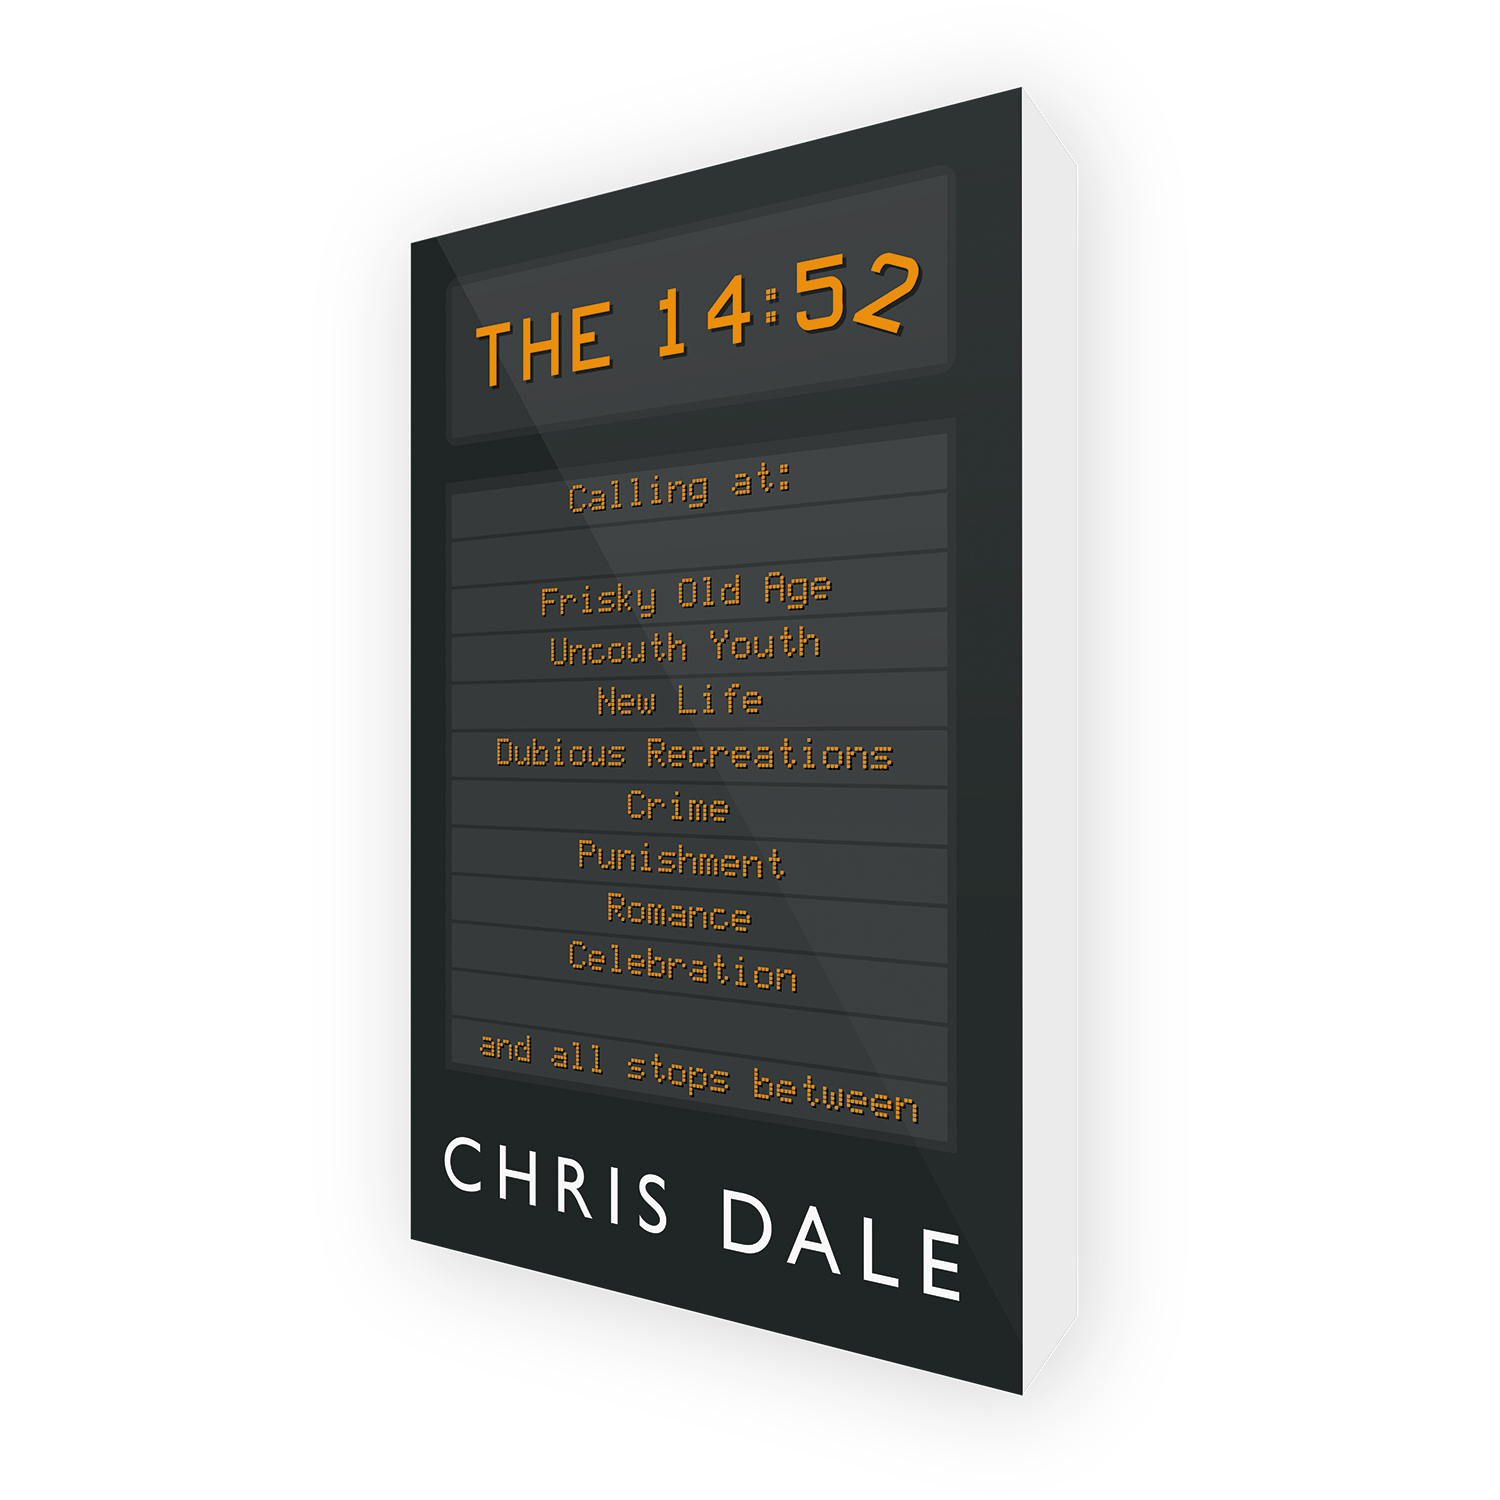 'The 14:52' is a bespoke cover design for dramedy novel, by the author Chris Dale. The book cover was designed by Mark Thomas, of coverness.com. To find out more about my book design services, please visit www.coverness.com.